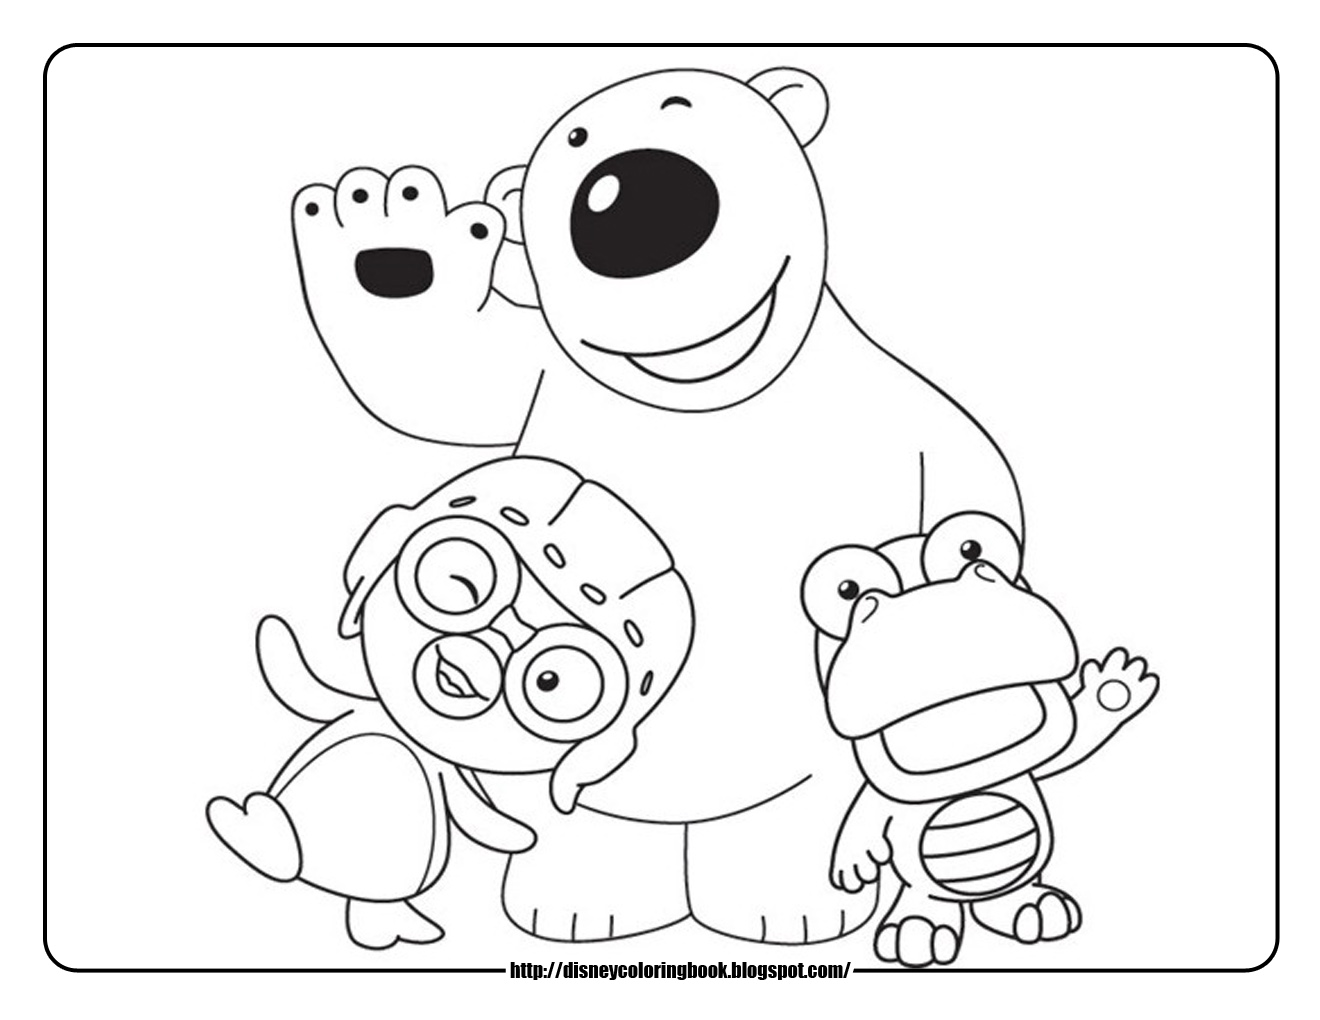 Pororo The Little Penguin: Free Disney Coloring Sheets